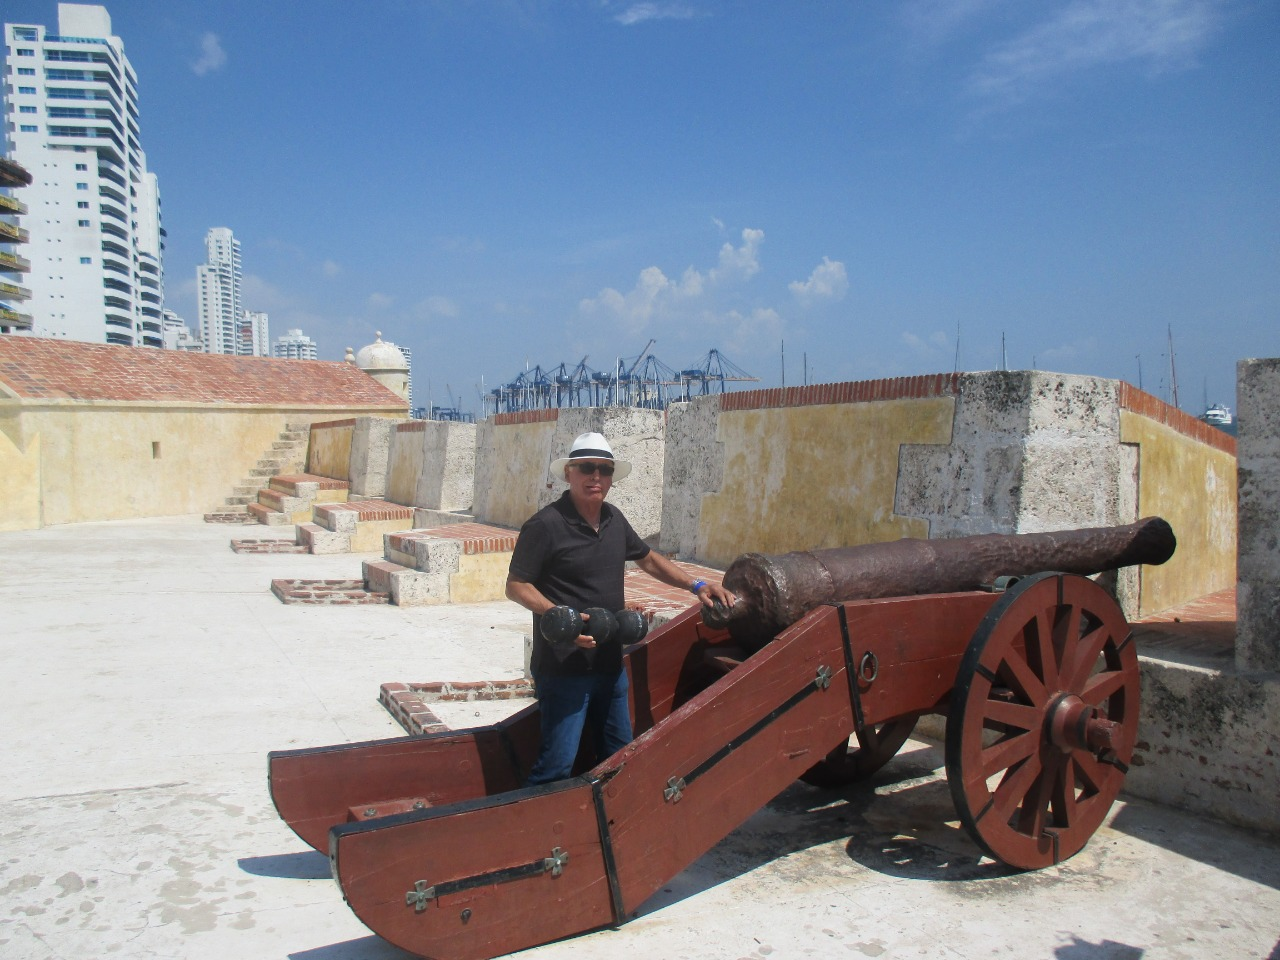 Cartagena City Tours Bogotravel Tours